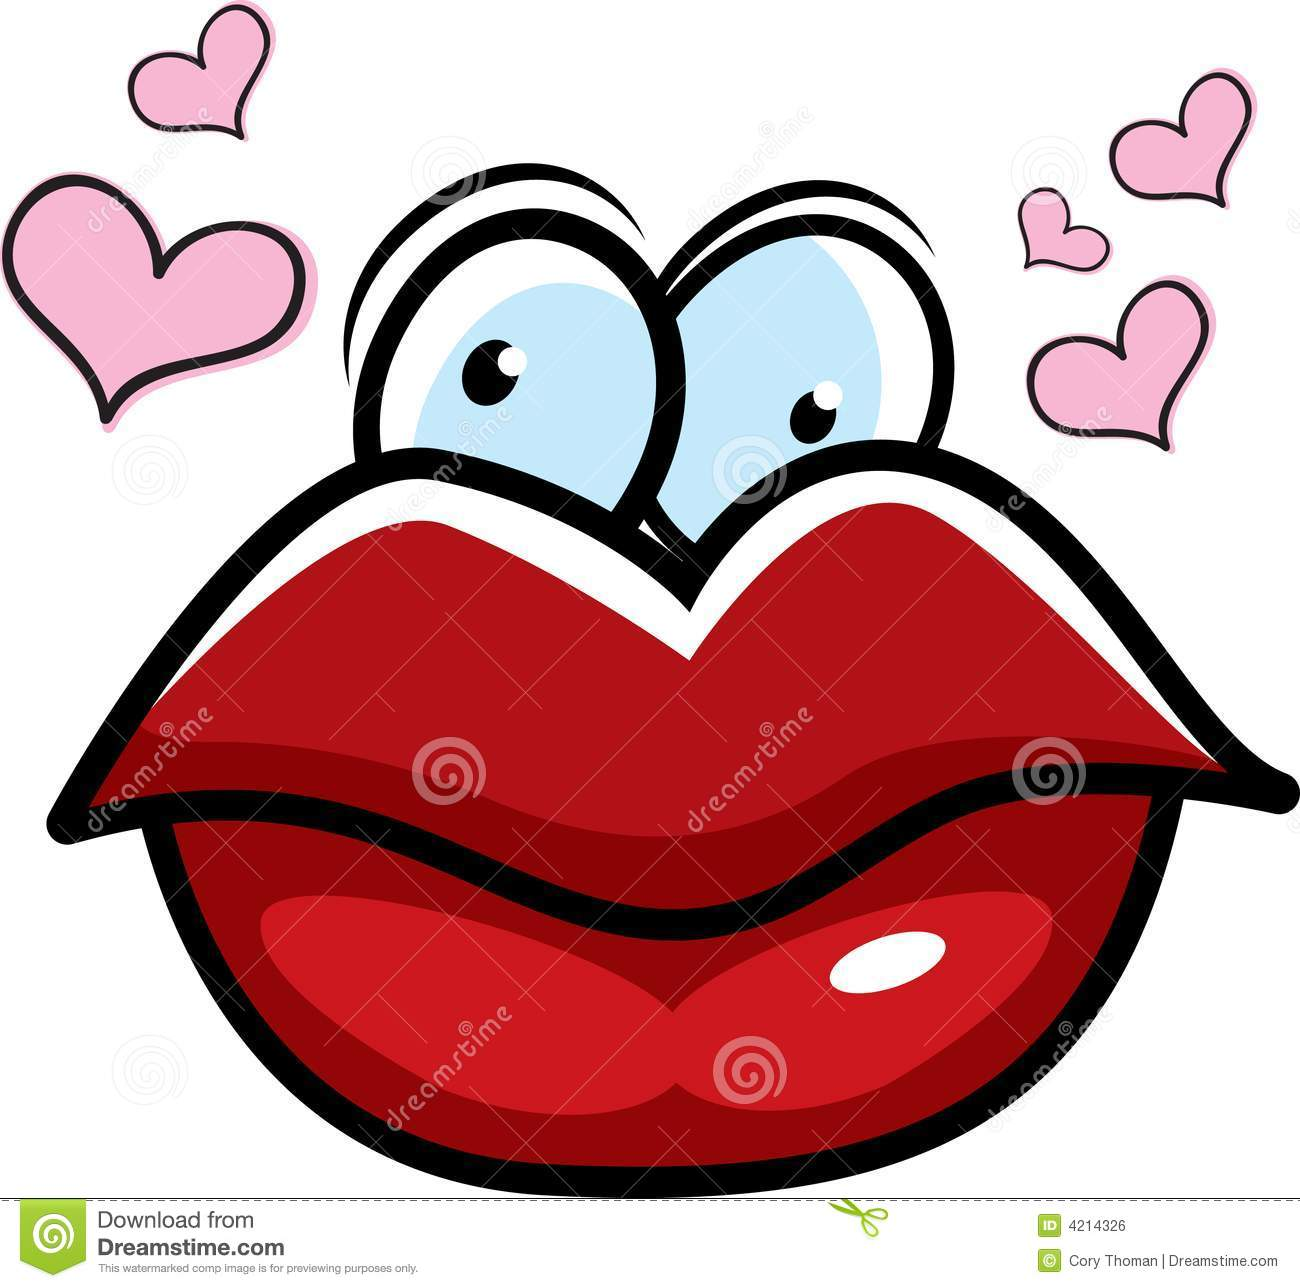 free animated kisses clipart - photo #29